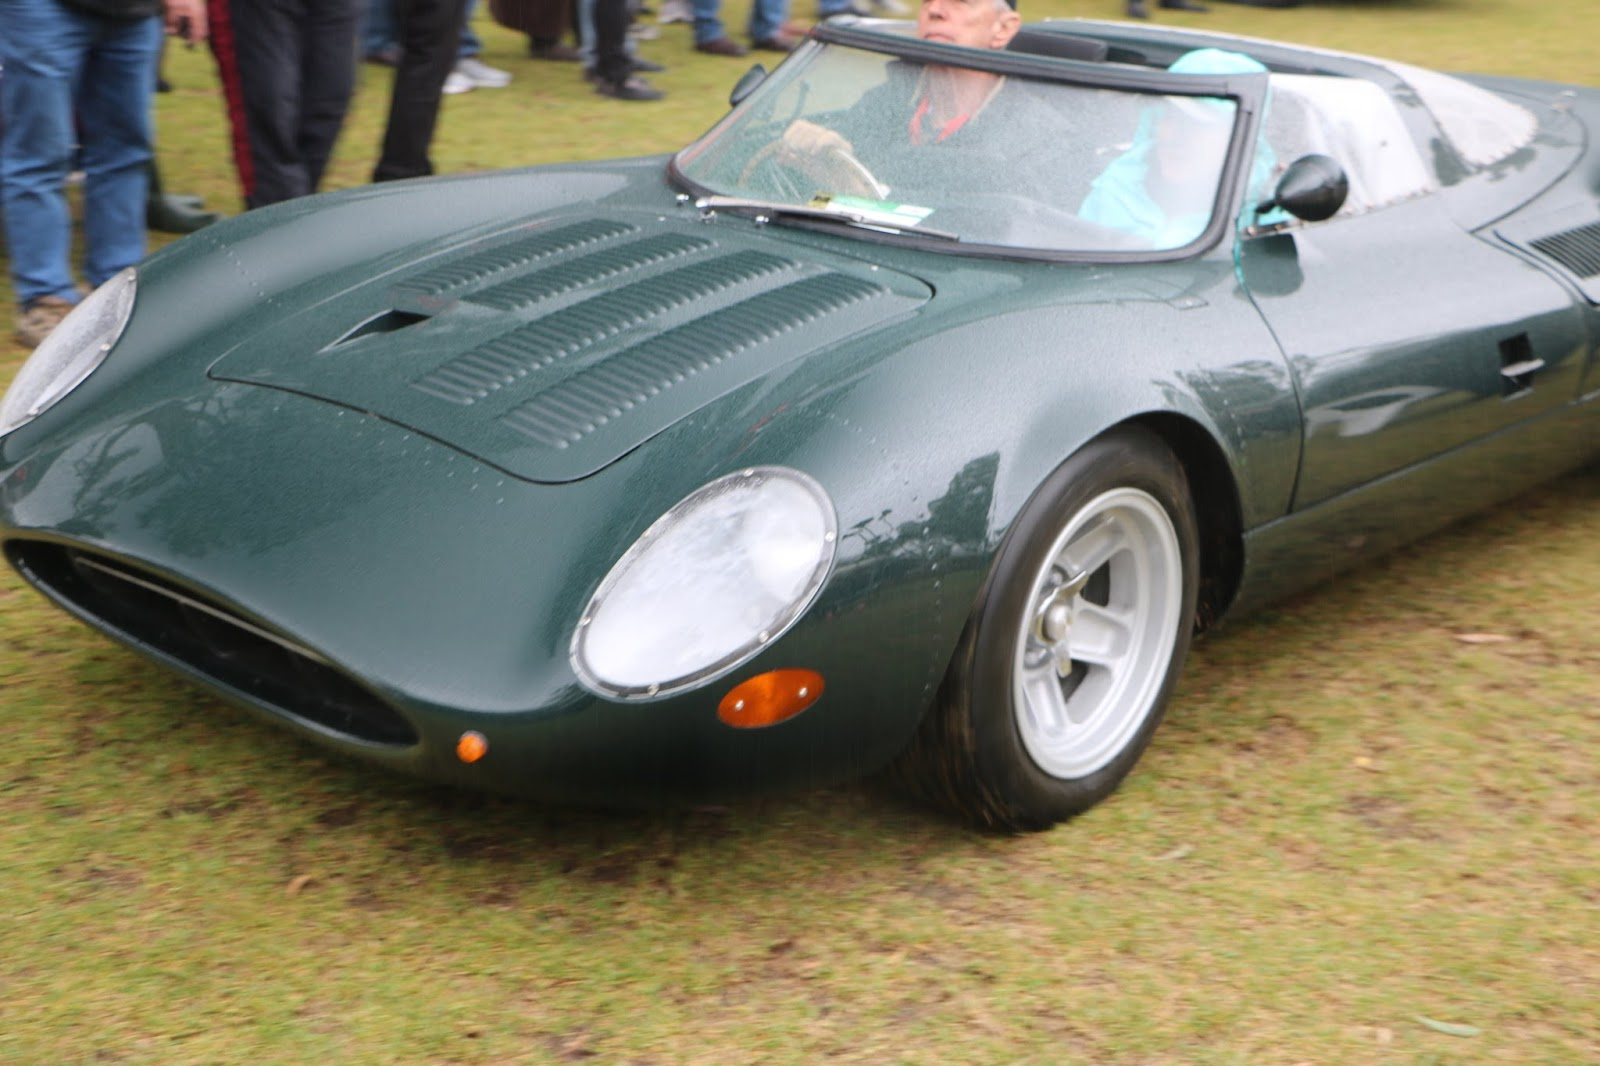 Jaguar_National_Rally_2018-04-14_0277 - XJ13 Replica.JPG